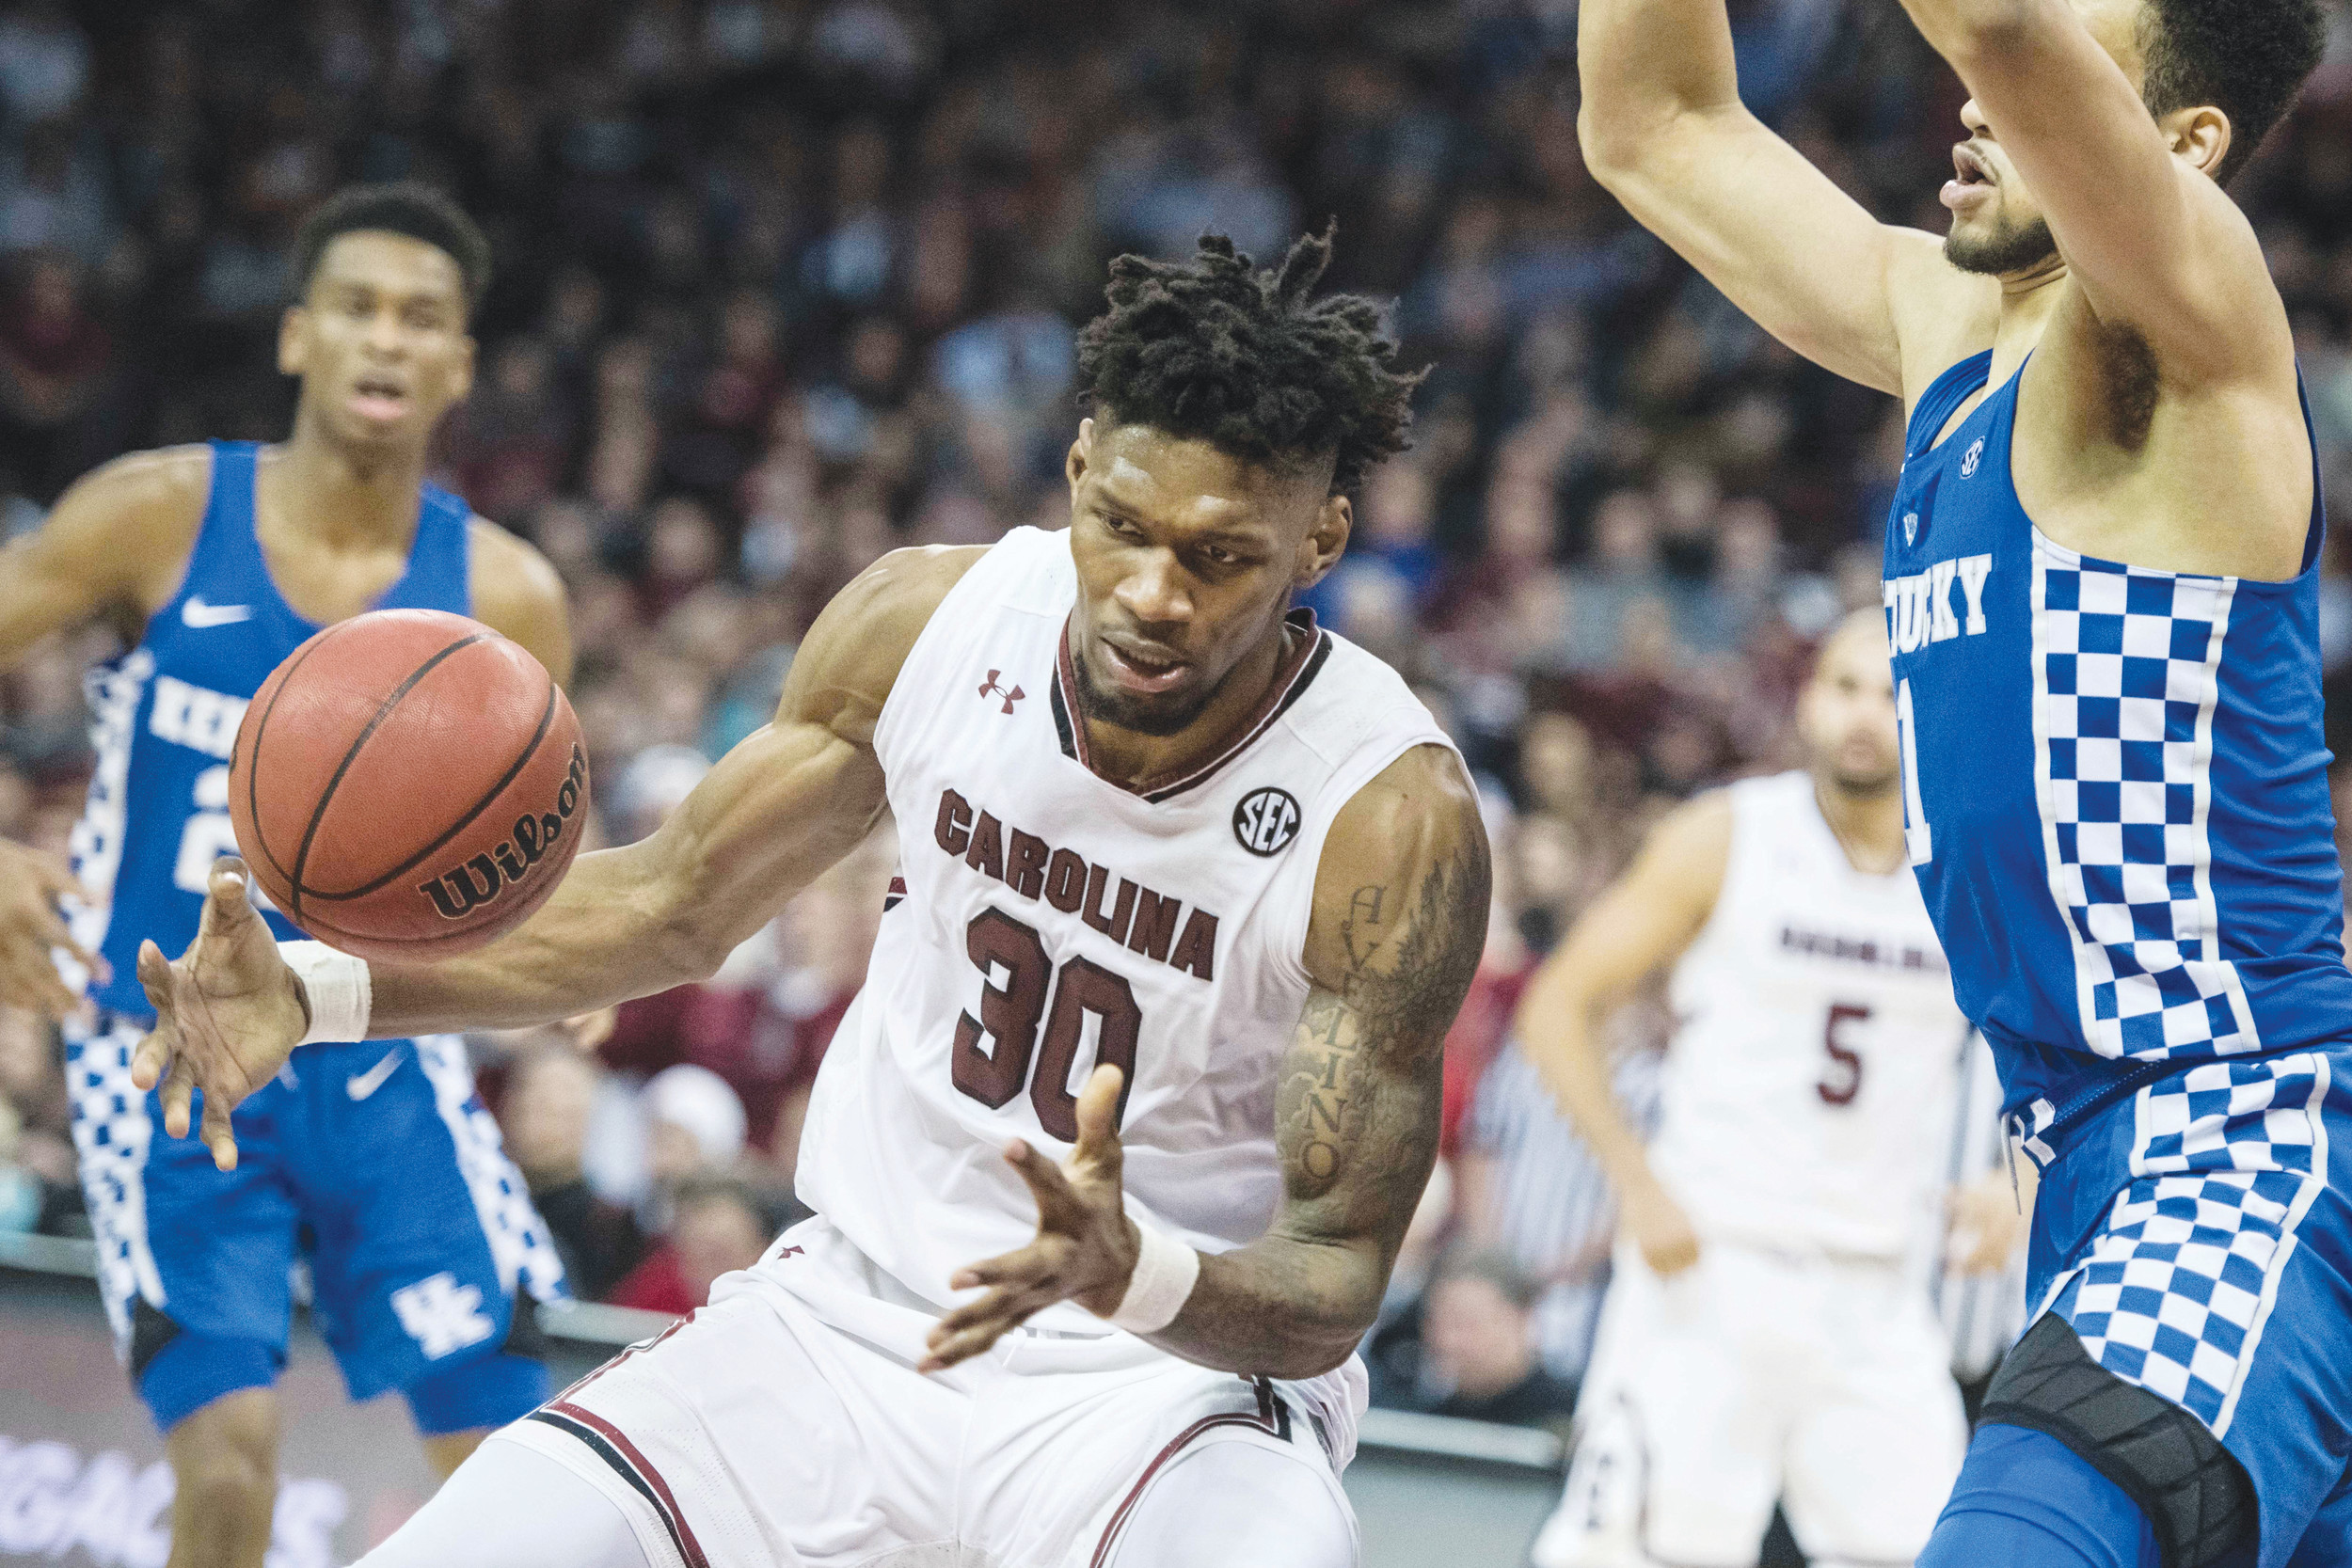 South Carolina forward Chris Silva (30) reaches for a pass against Kentucky forward Sacha Killeya-Jones (1) during the second half of the Gamecocks' 76-68 victory over the 18th-ranked Wildcats on Tuesday in Columbia.